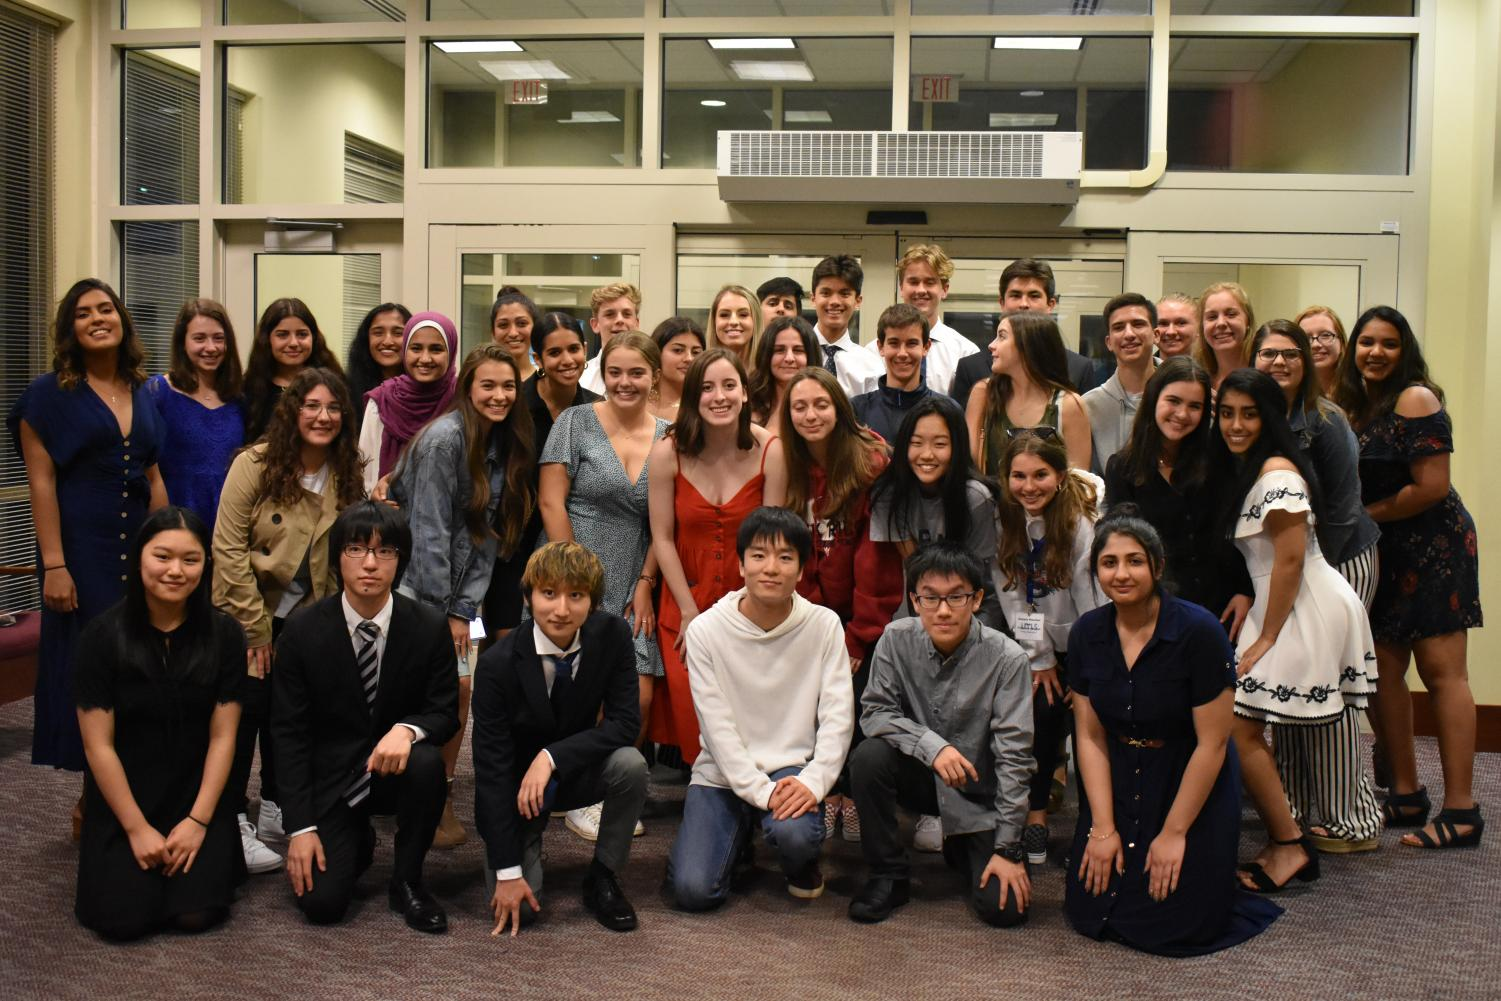 Rock Ridge hosts and delegates gather together at the farewell dinner. (Photo by Rida Ali)